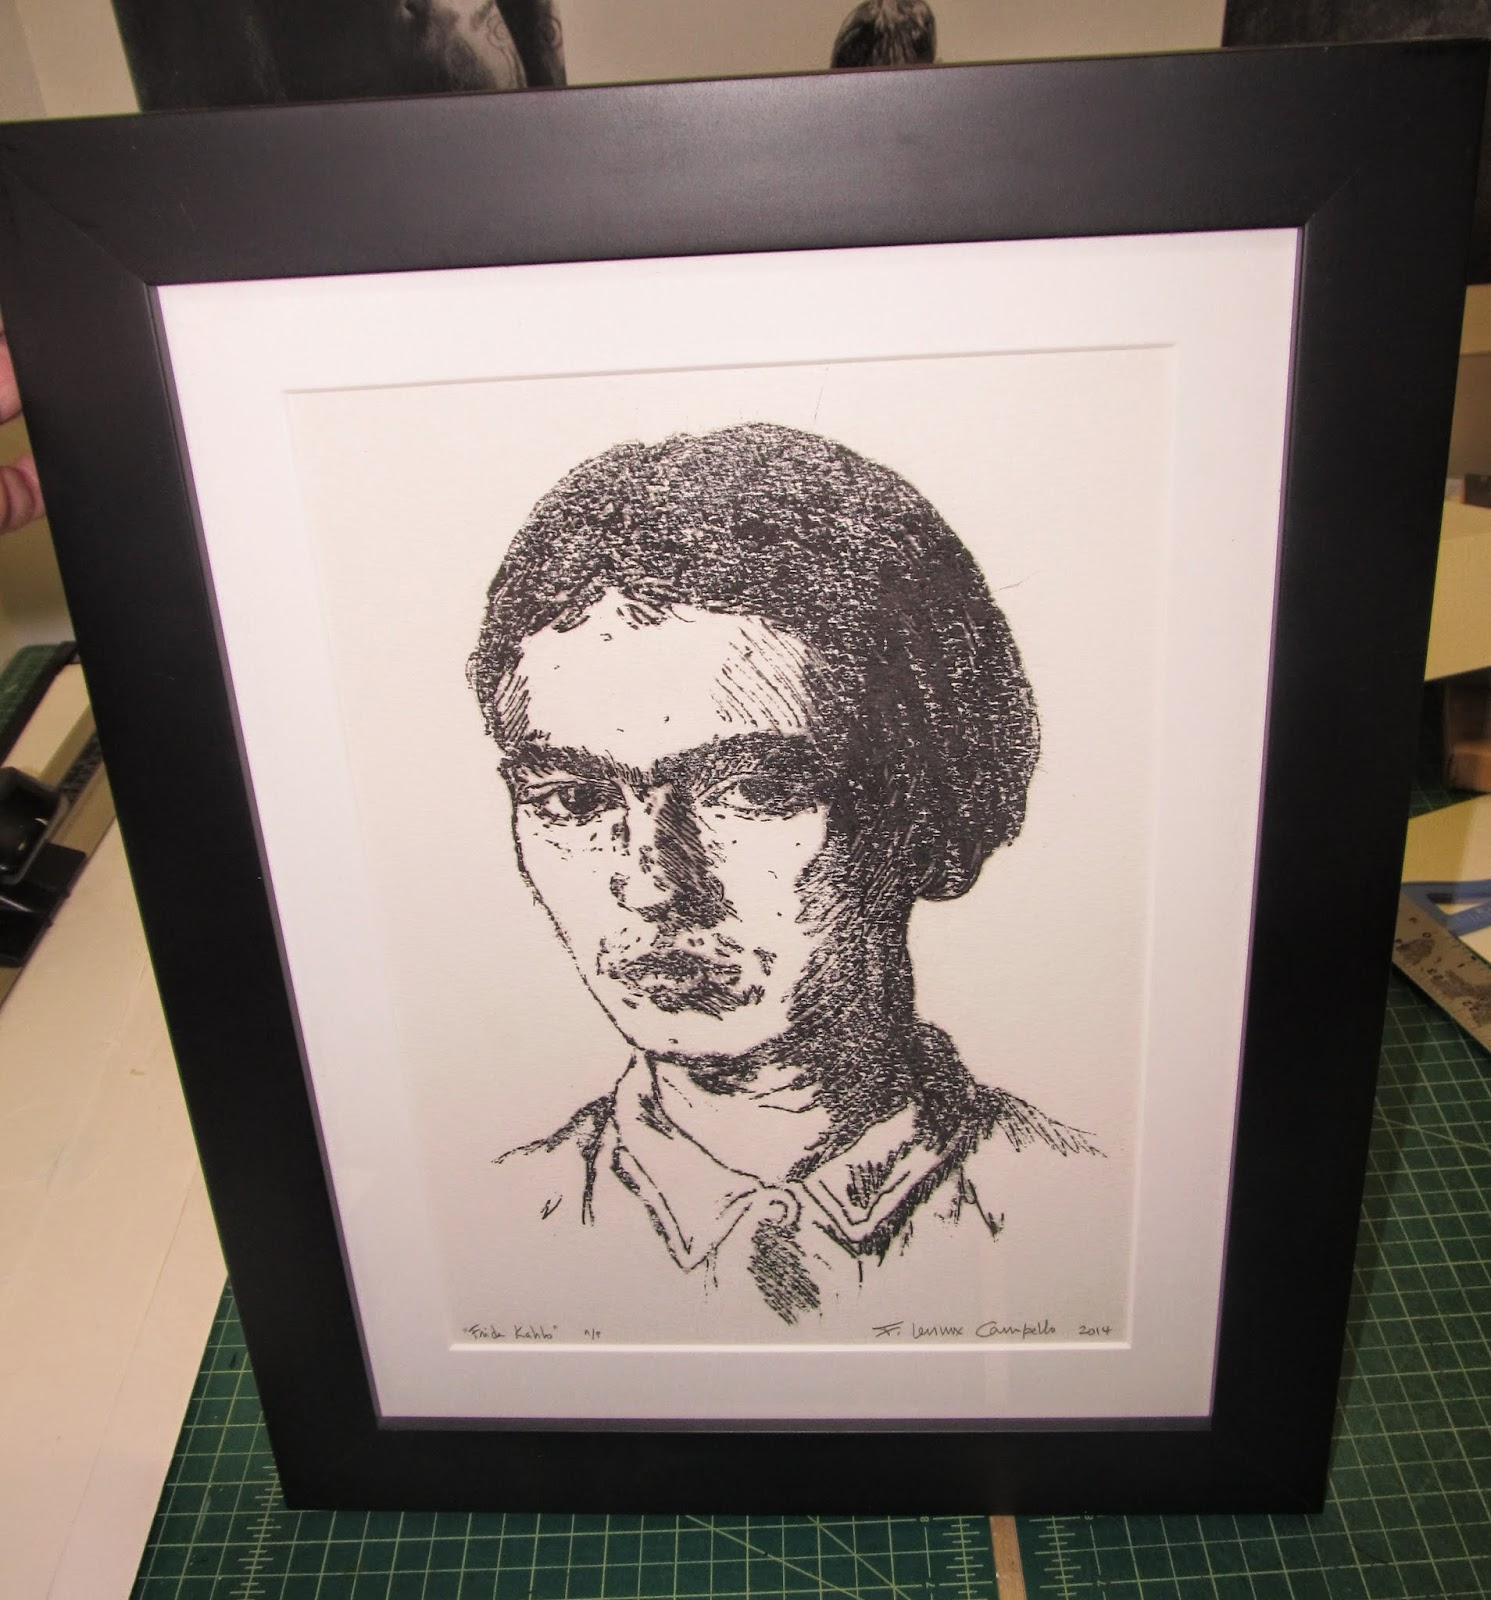 Frida Kahlo - Artist Proof - 2014 by F. Lennox Campello